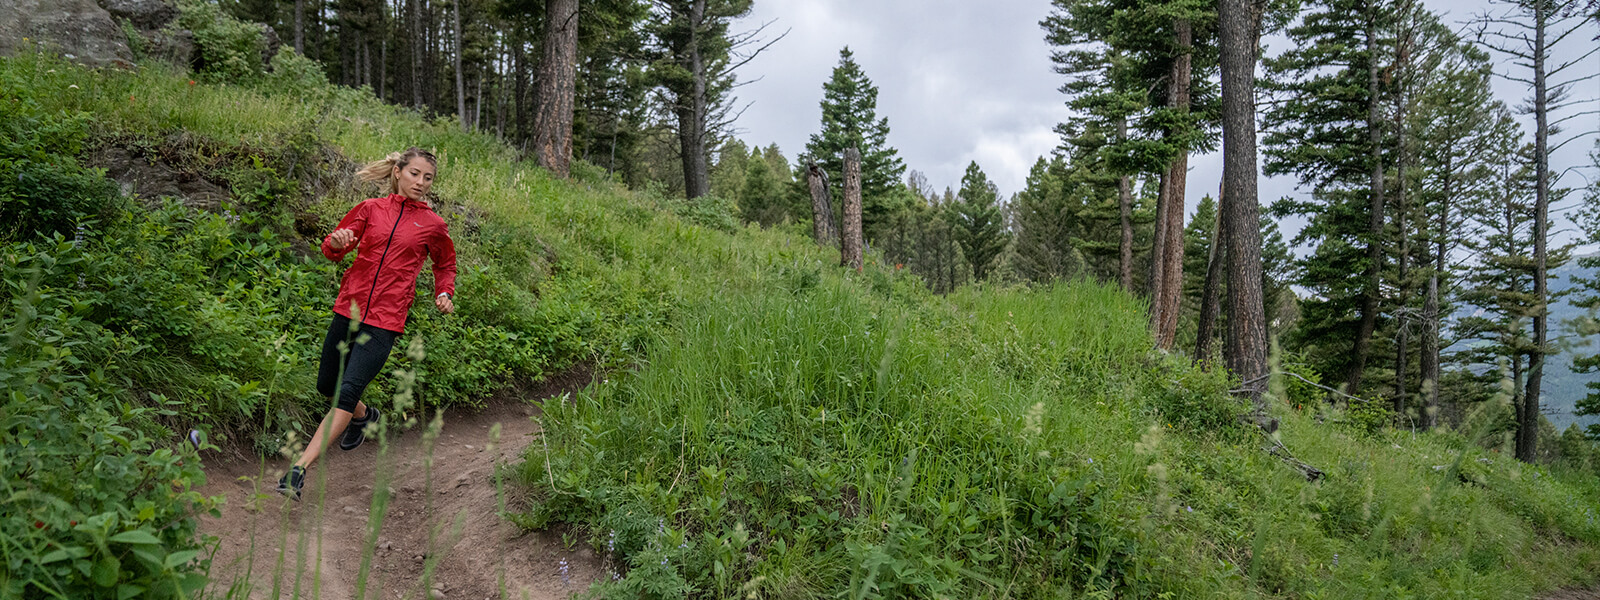 Runner hits a hairpin curve while coming down a dirt trail between trees on the side of a grassy mountain.